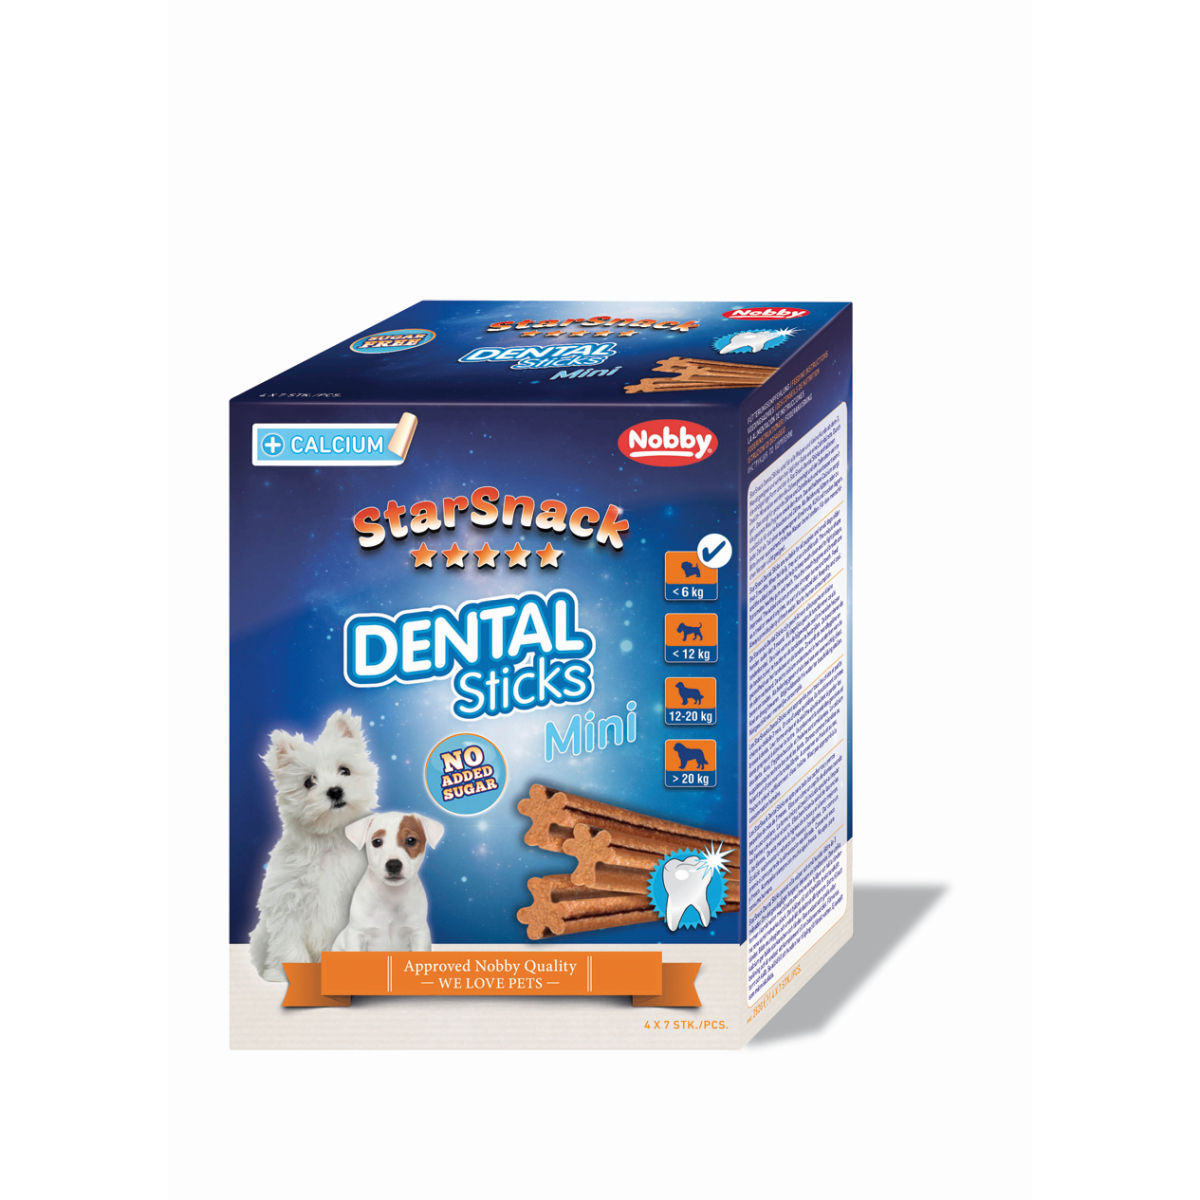 NB DENTAL STICKS MINI J 00002